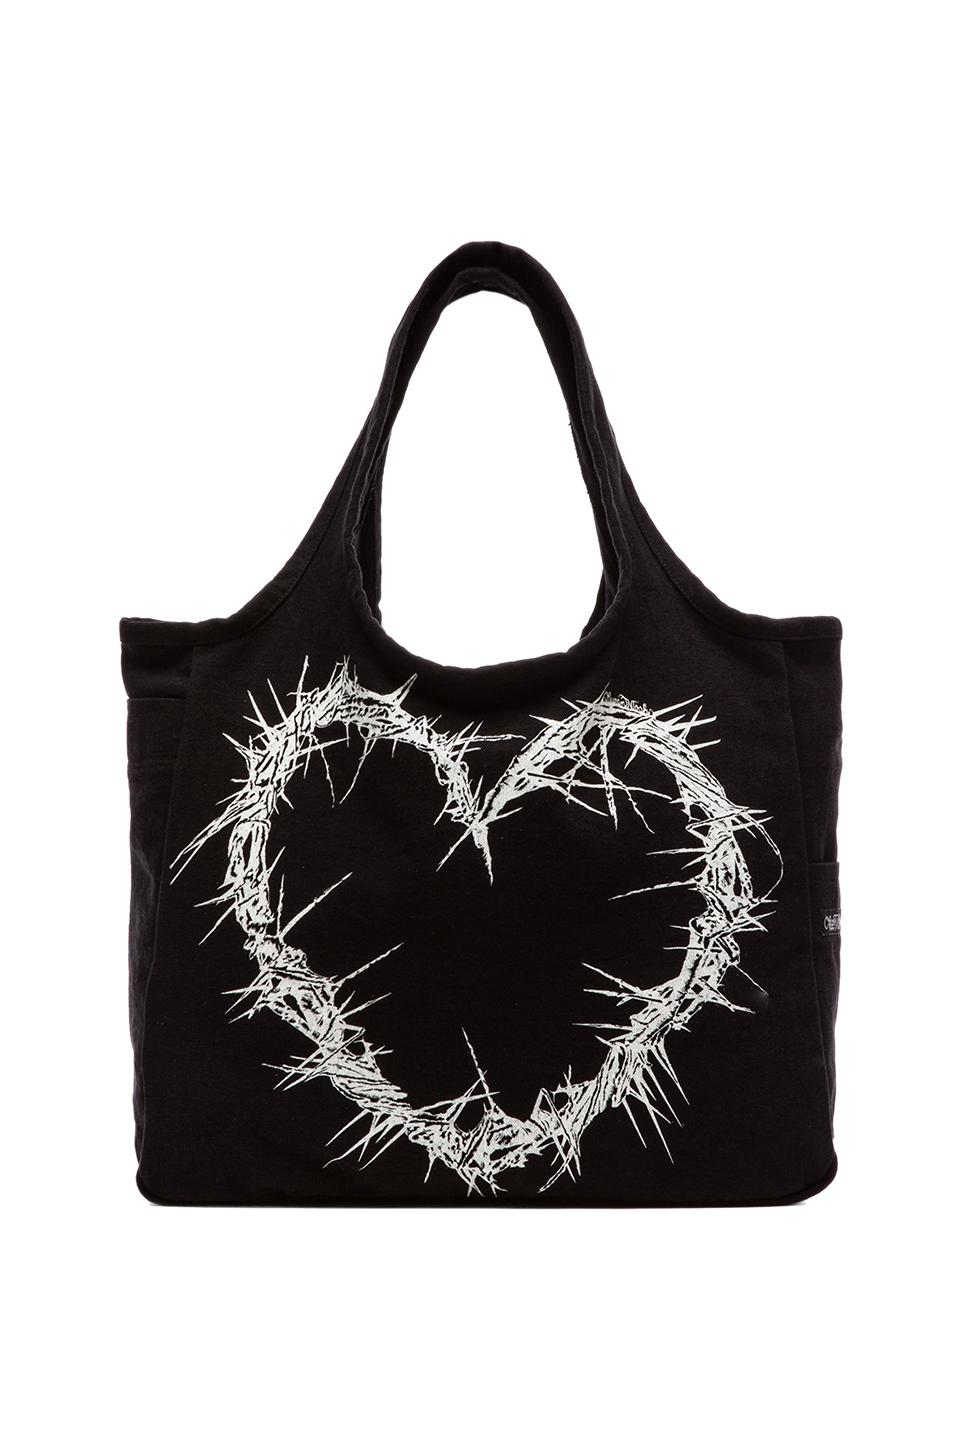 Lauren Moshi Taylor Thorn Heart Canvas Tote in Black